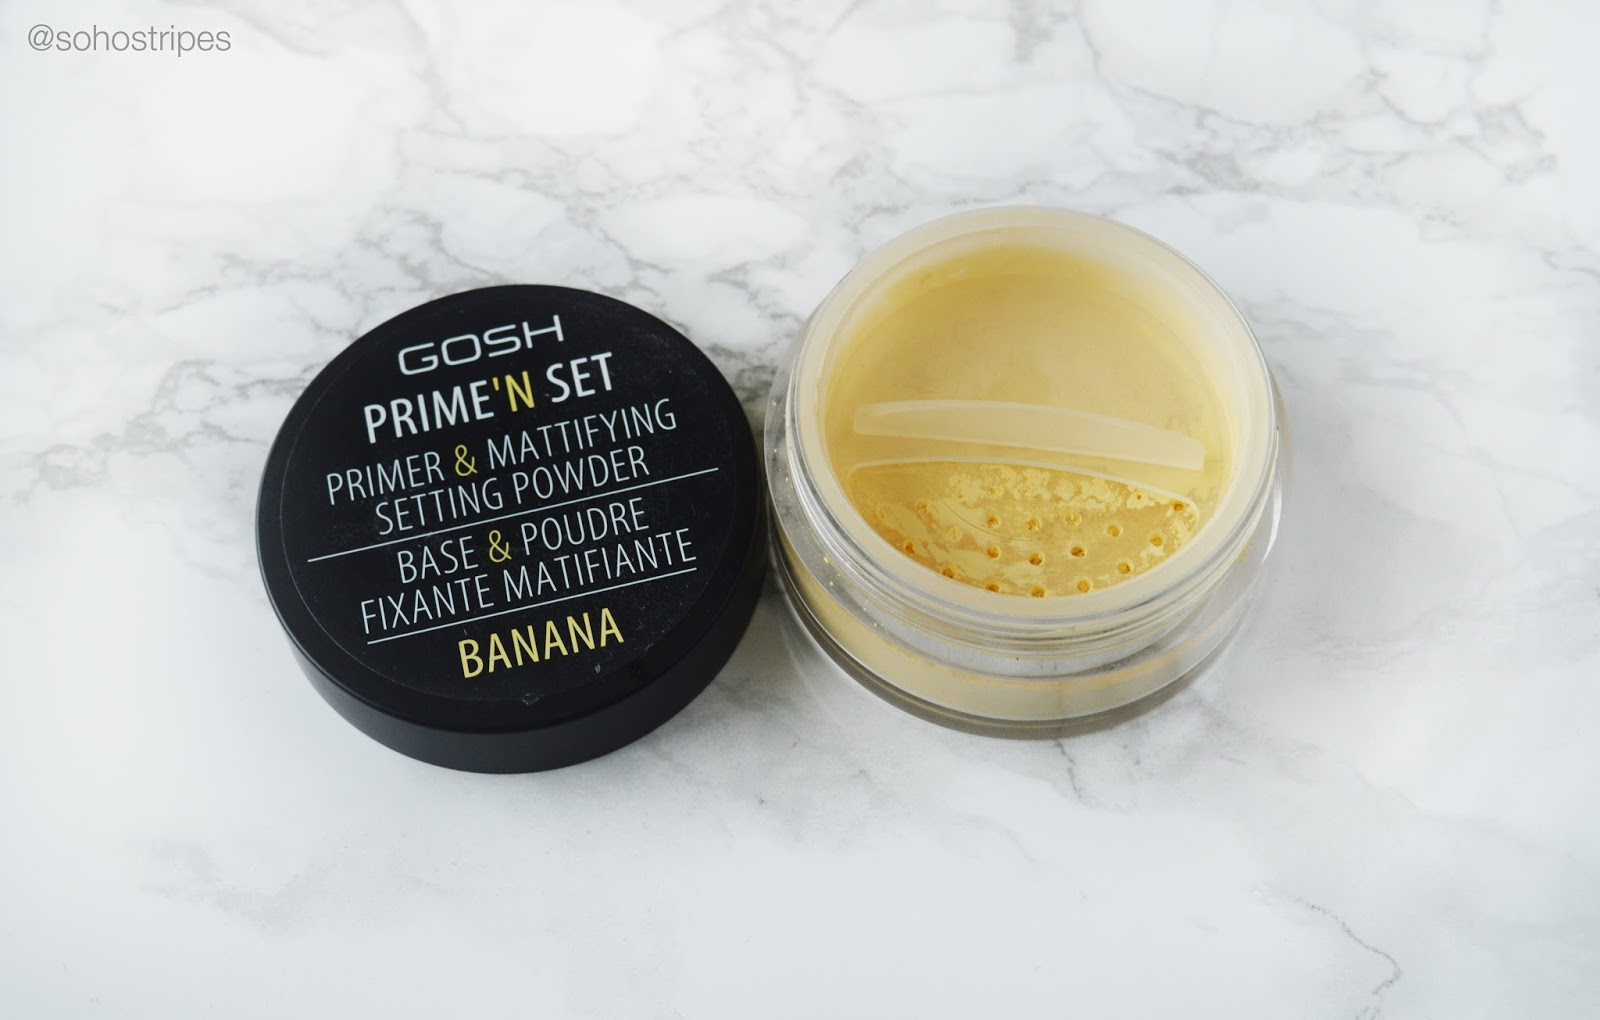 GOSH Prime'n Set Banana Powder Primer and Mattifying Setting Powder Superdrug